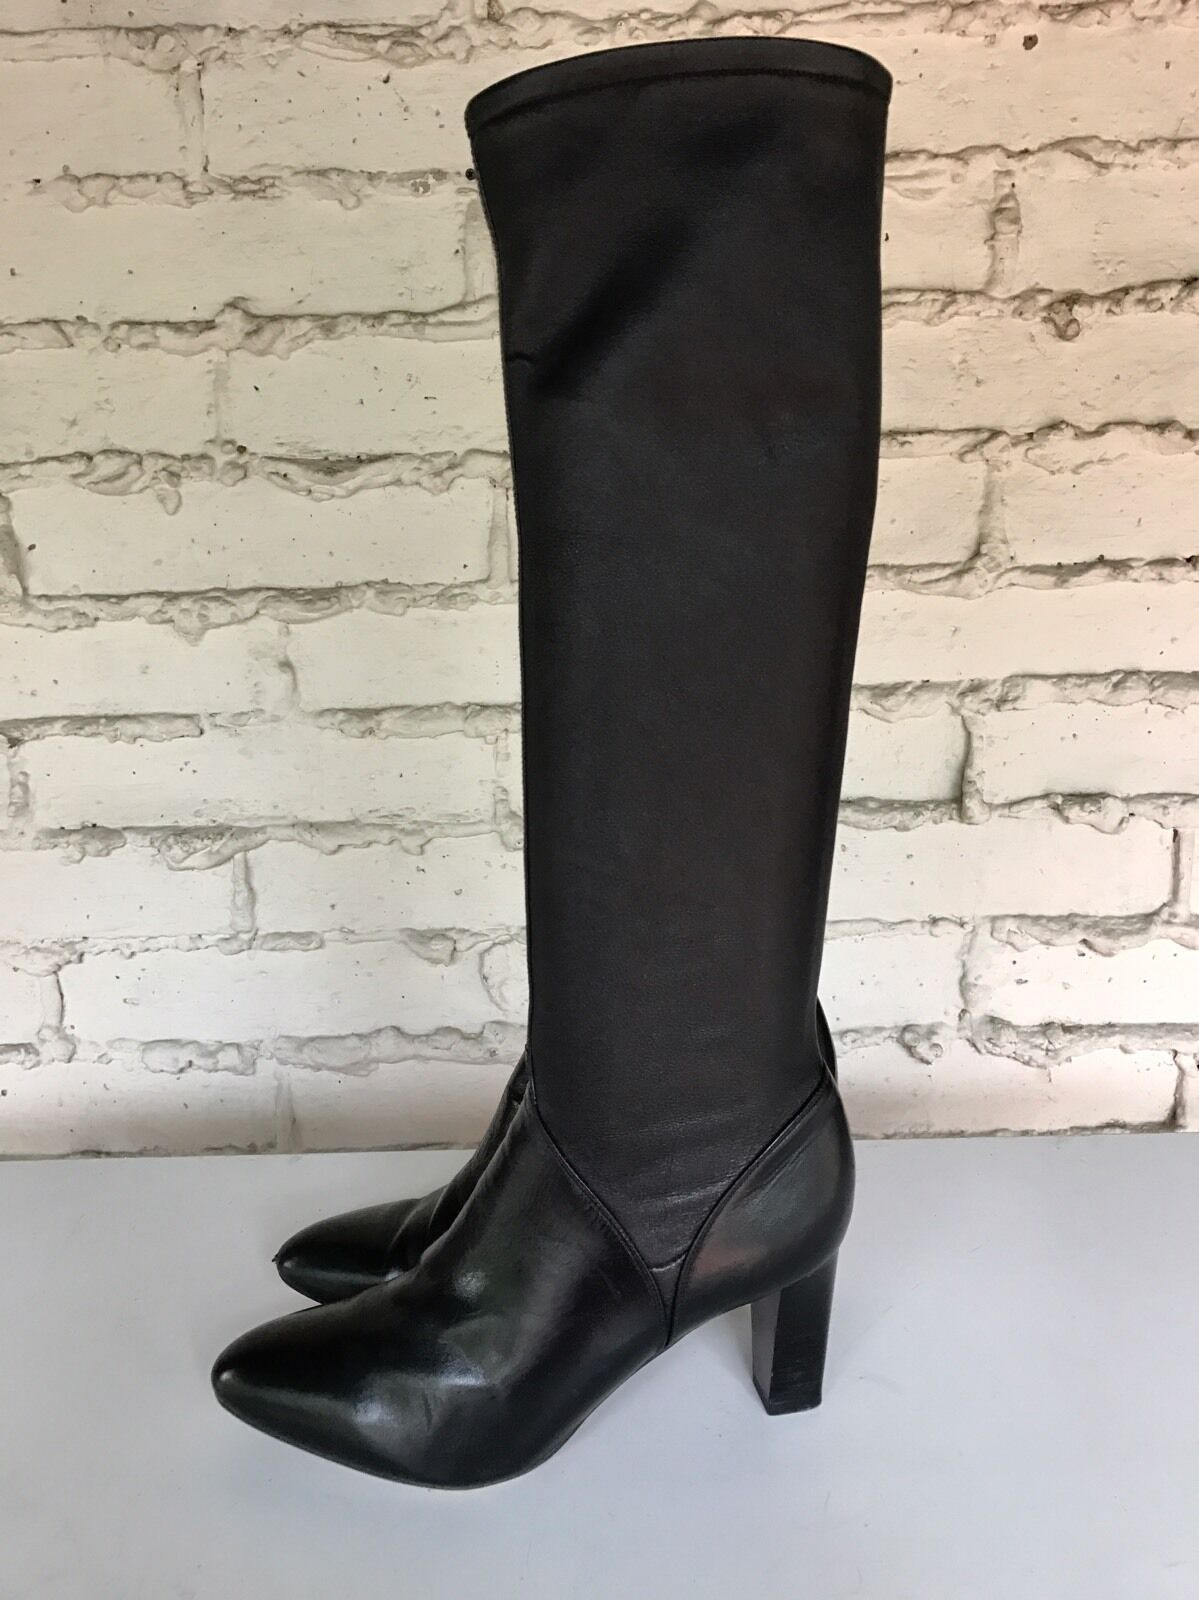 EUC Cole Haan Womens US 10B Joana Air Tall Stretch Leather Boots Black 498